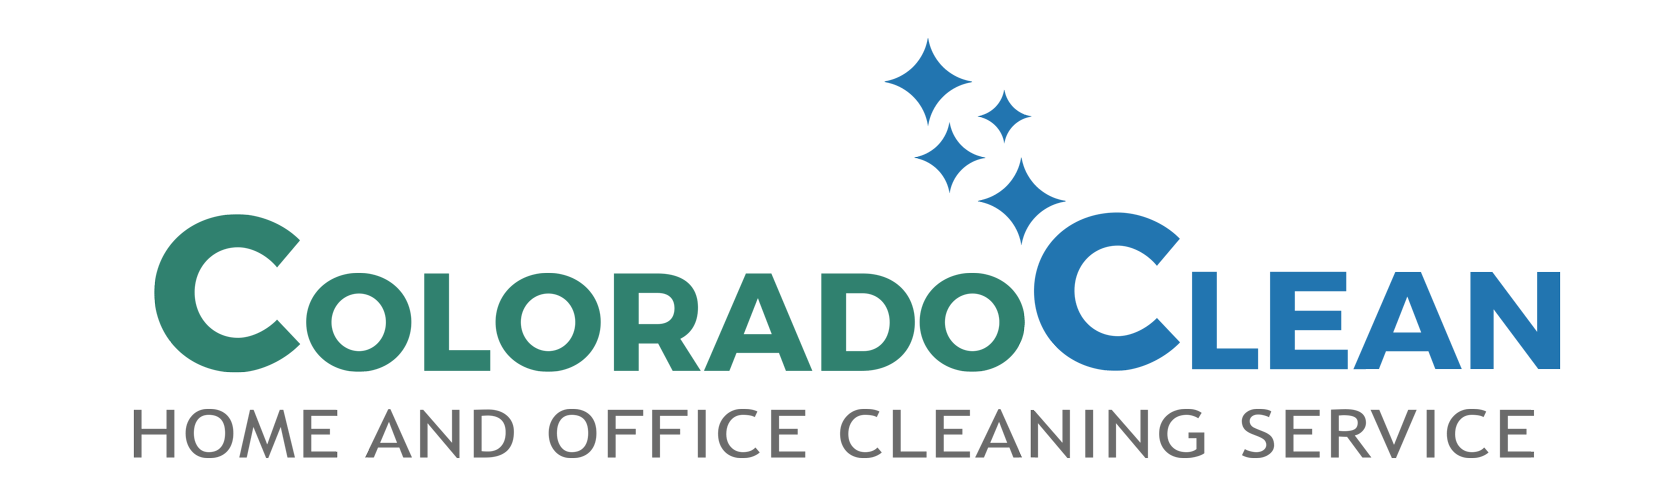 ColoradoClean